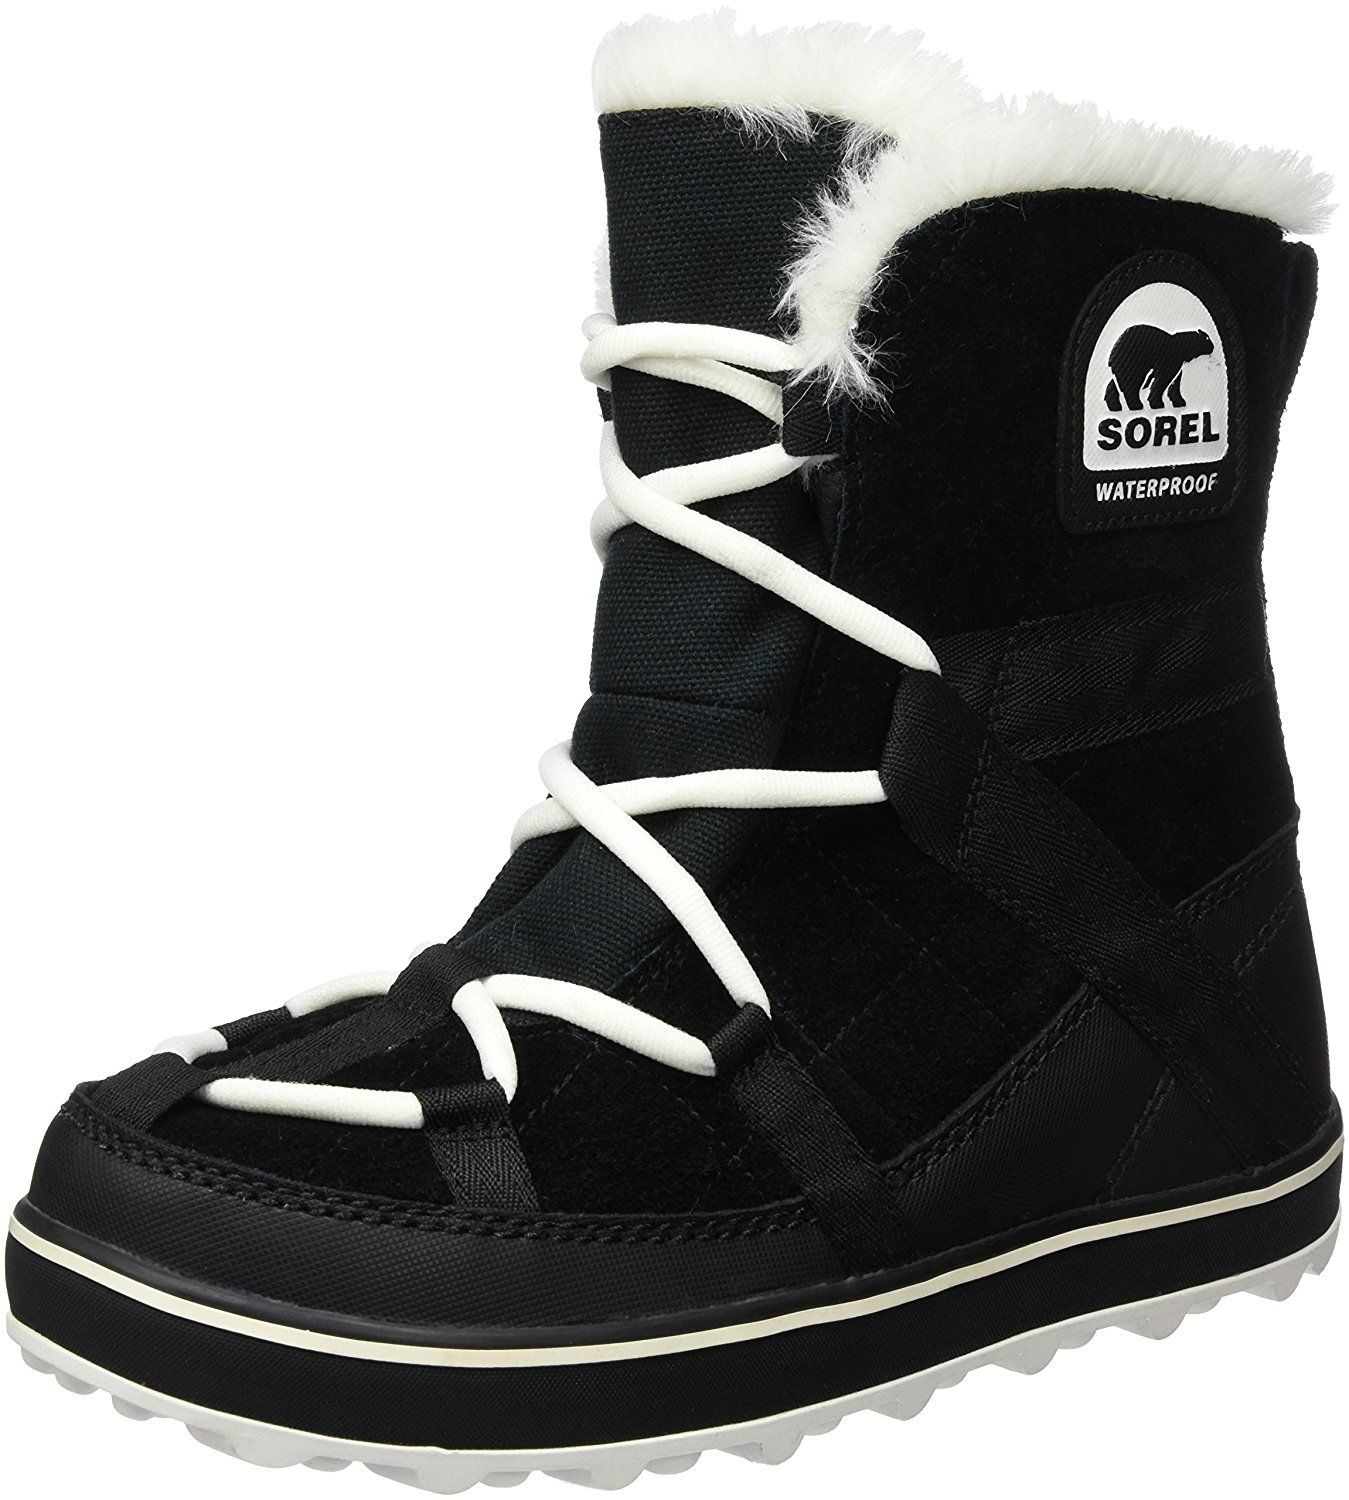 BootYou Get Women's Snow Sorel Shortie Explorer Can Glacy 8wv0OmNn